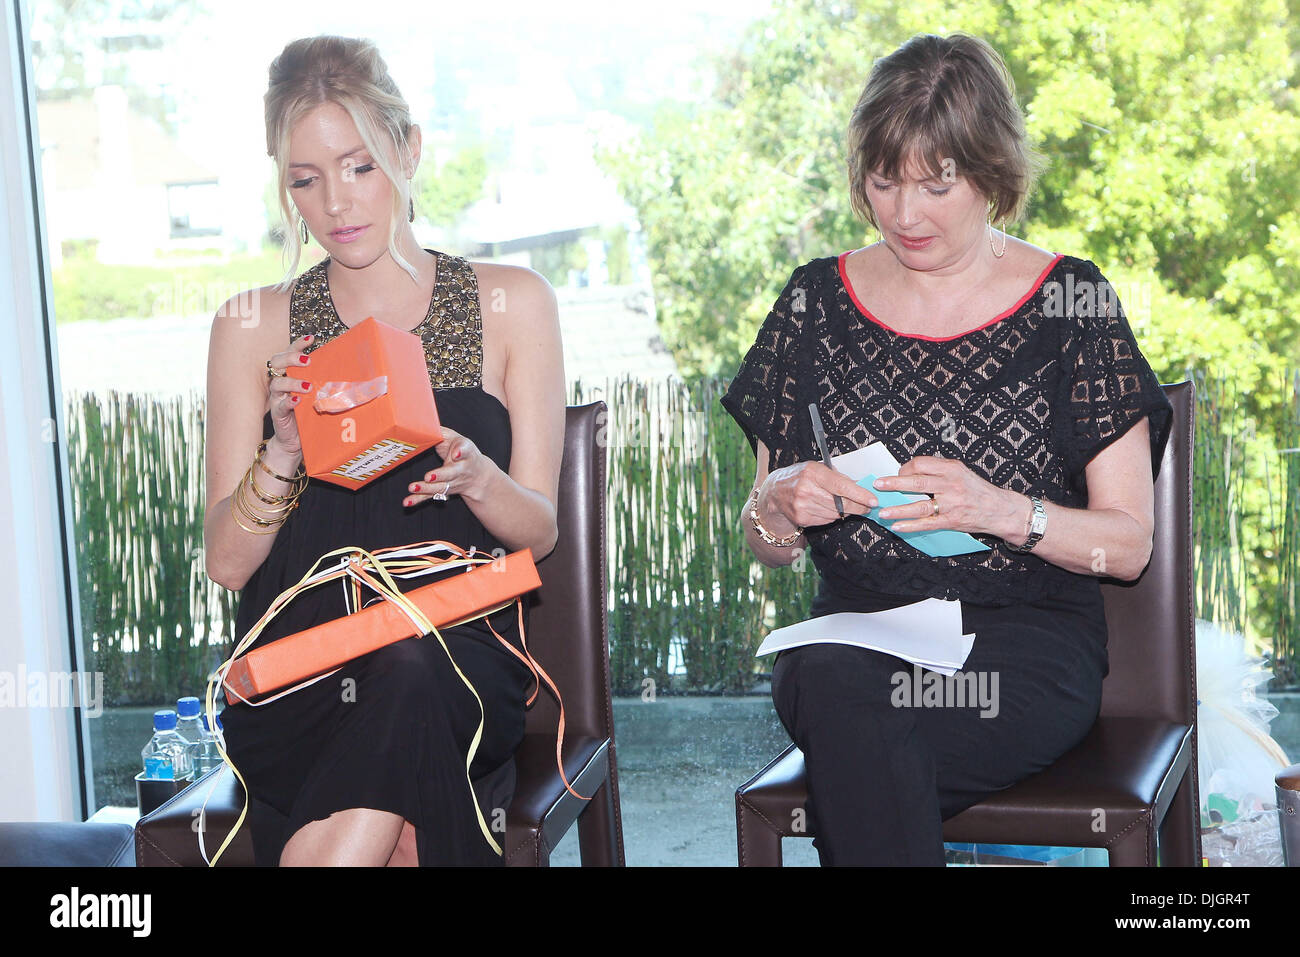 kristin cavallari opens gifts at her baby shower with her mother stock